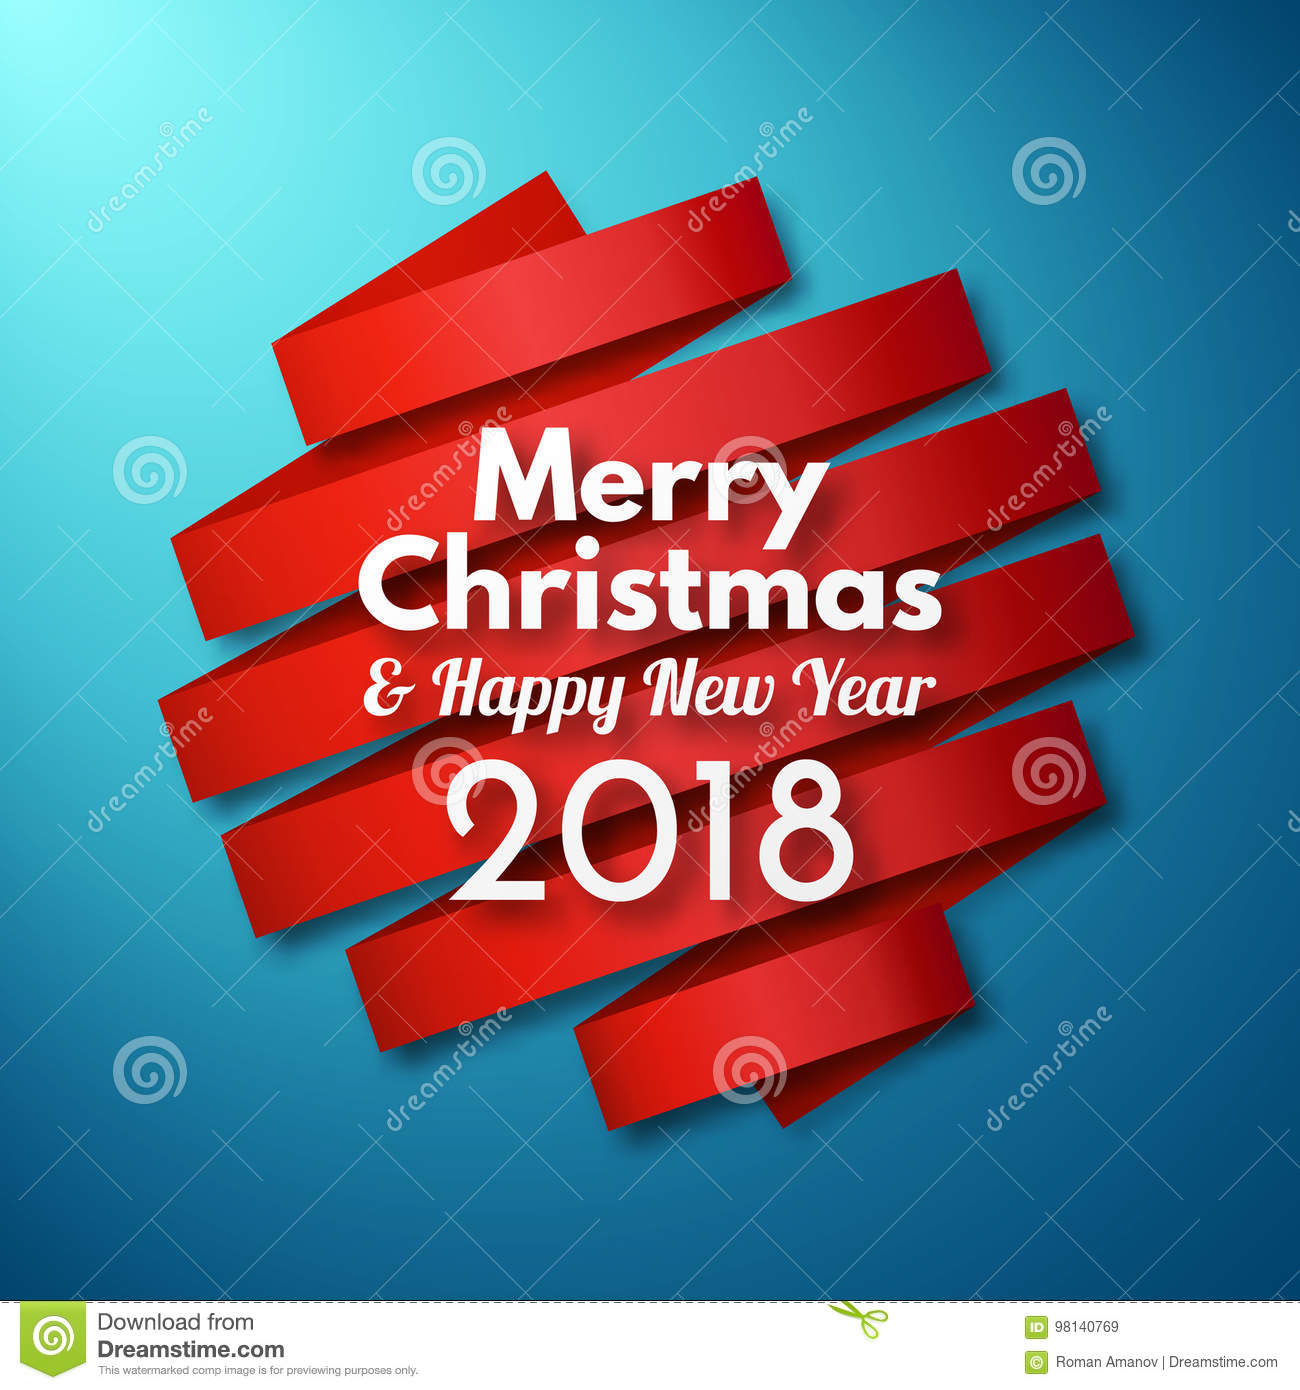 merry christmas and happy new year background with red ribbon and text